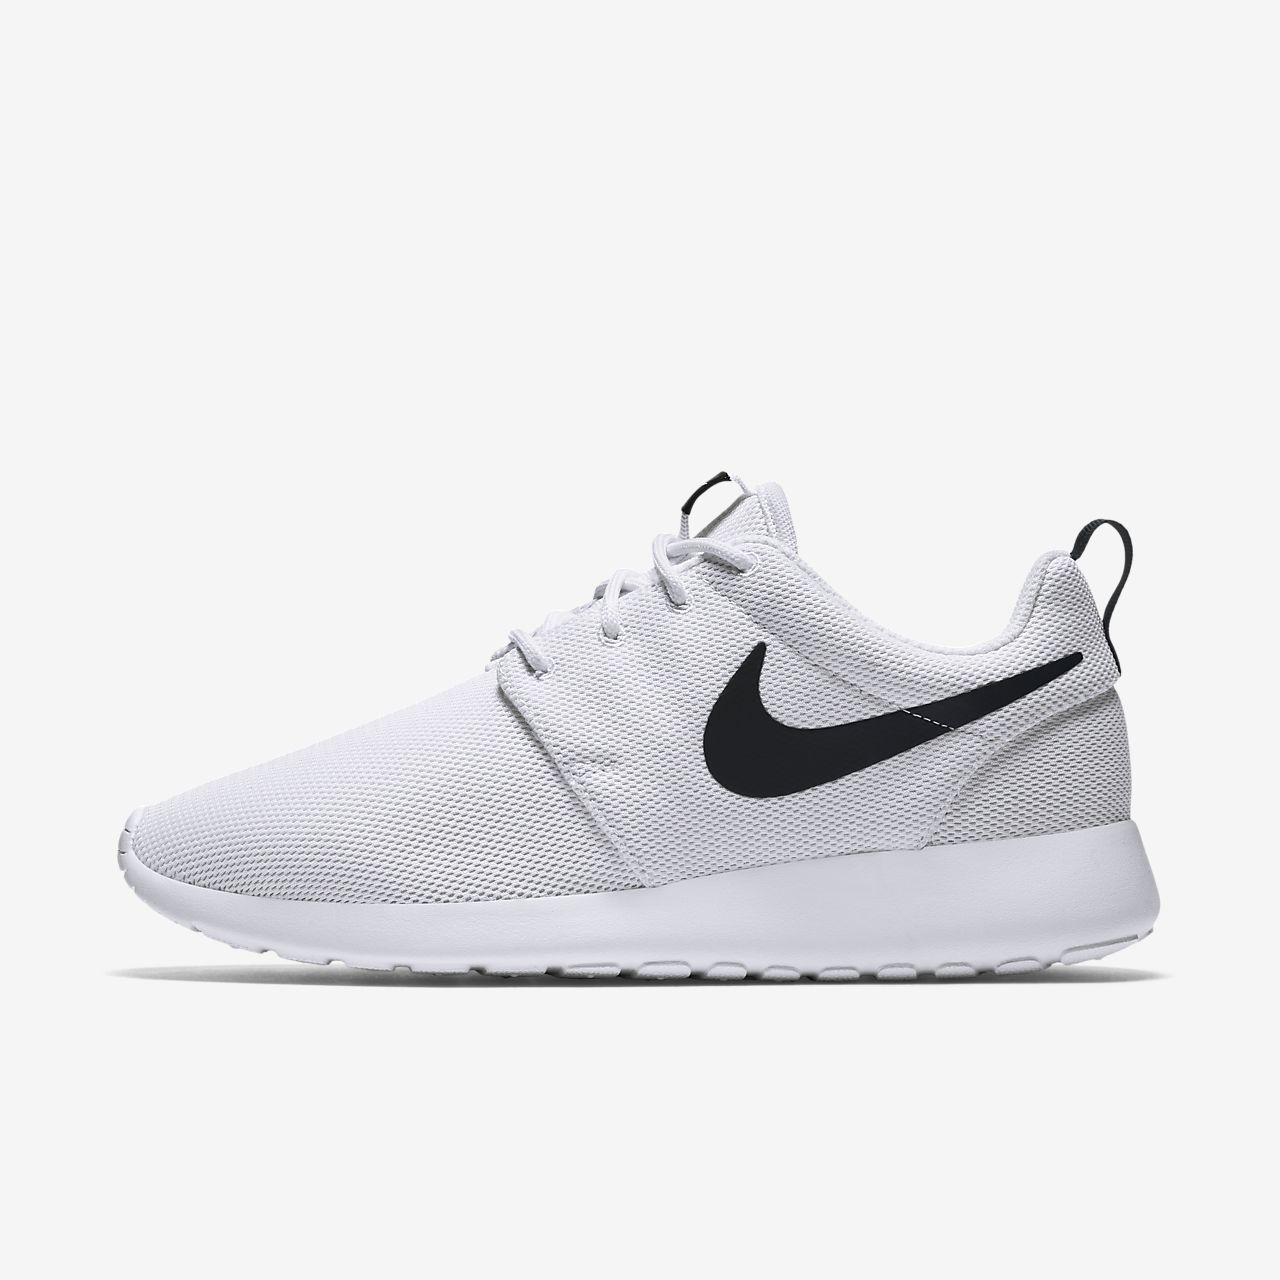 Nike Roshe One   Nike × Men and Women s shoes 2018 - thesaladgreen.com 82eed2692